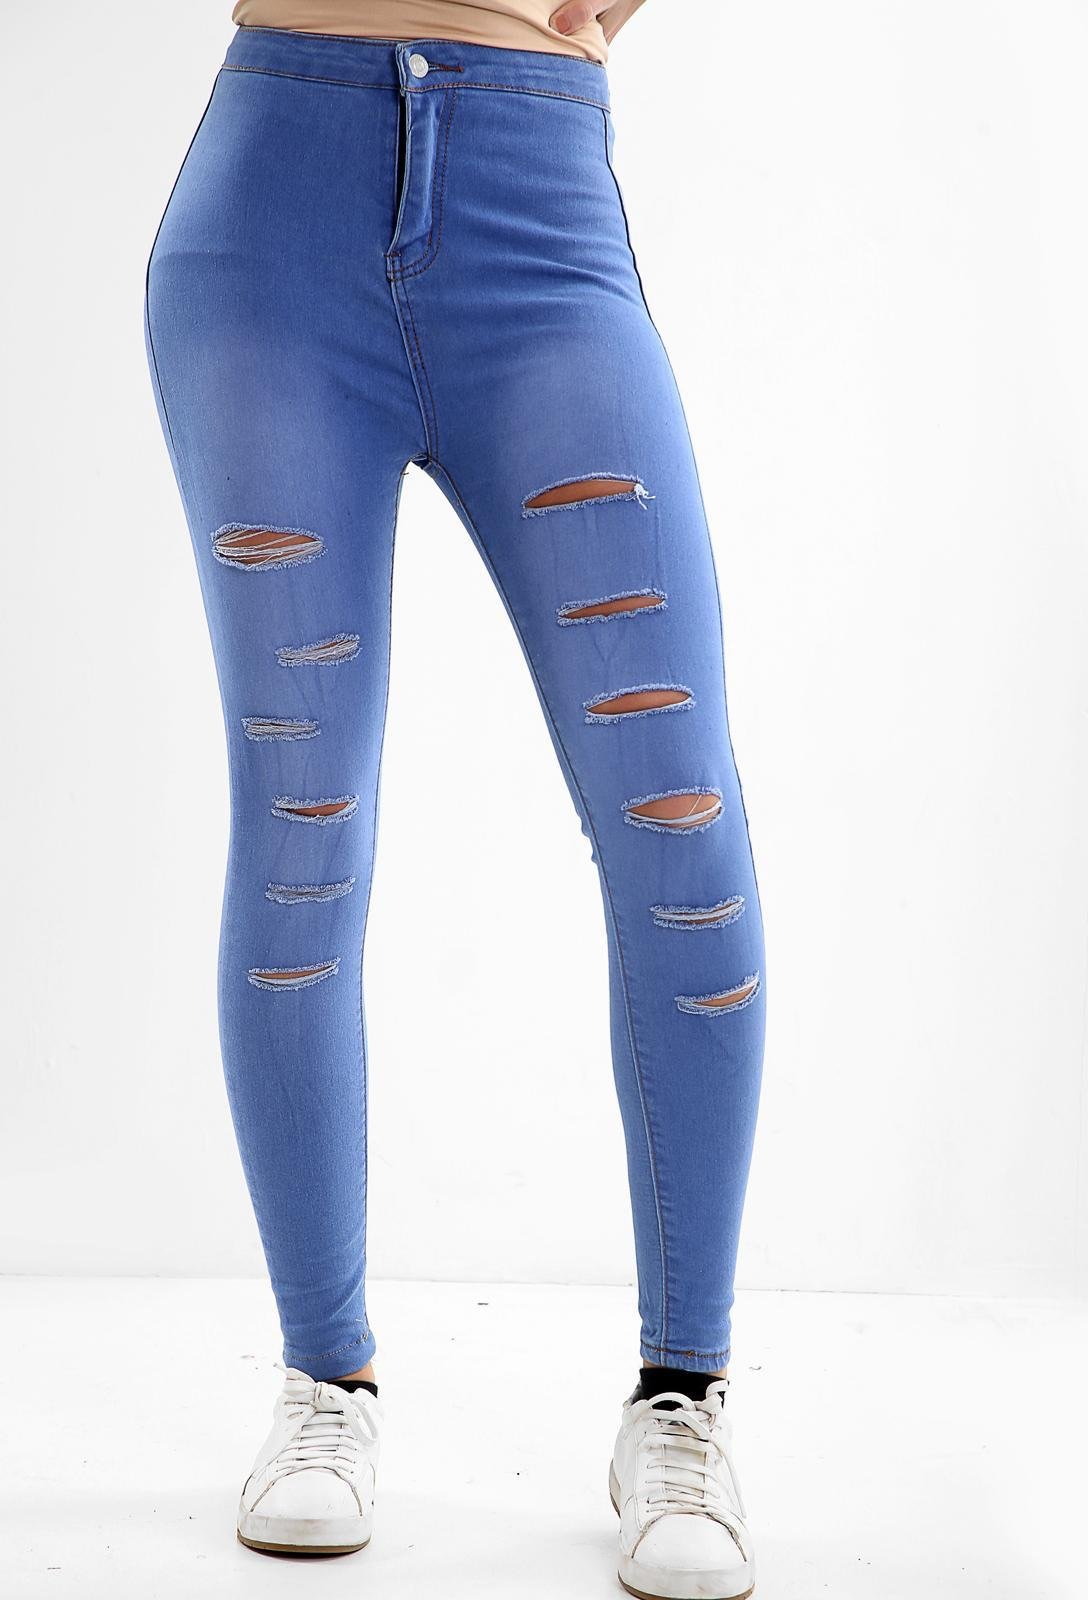 Blue Ladies High waisted jeans